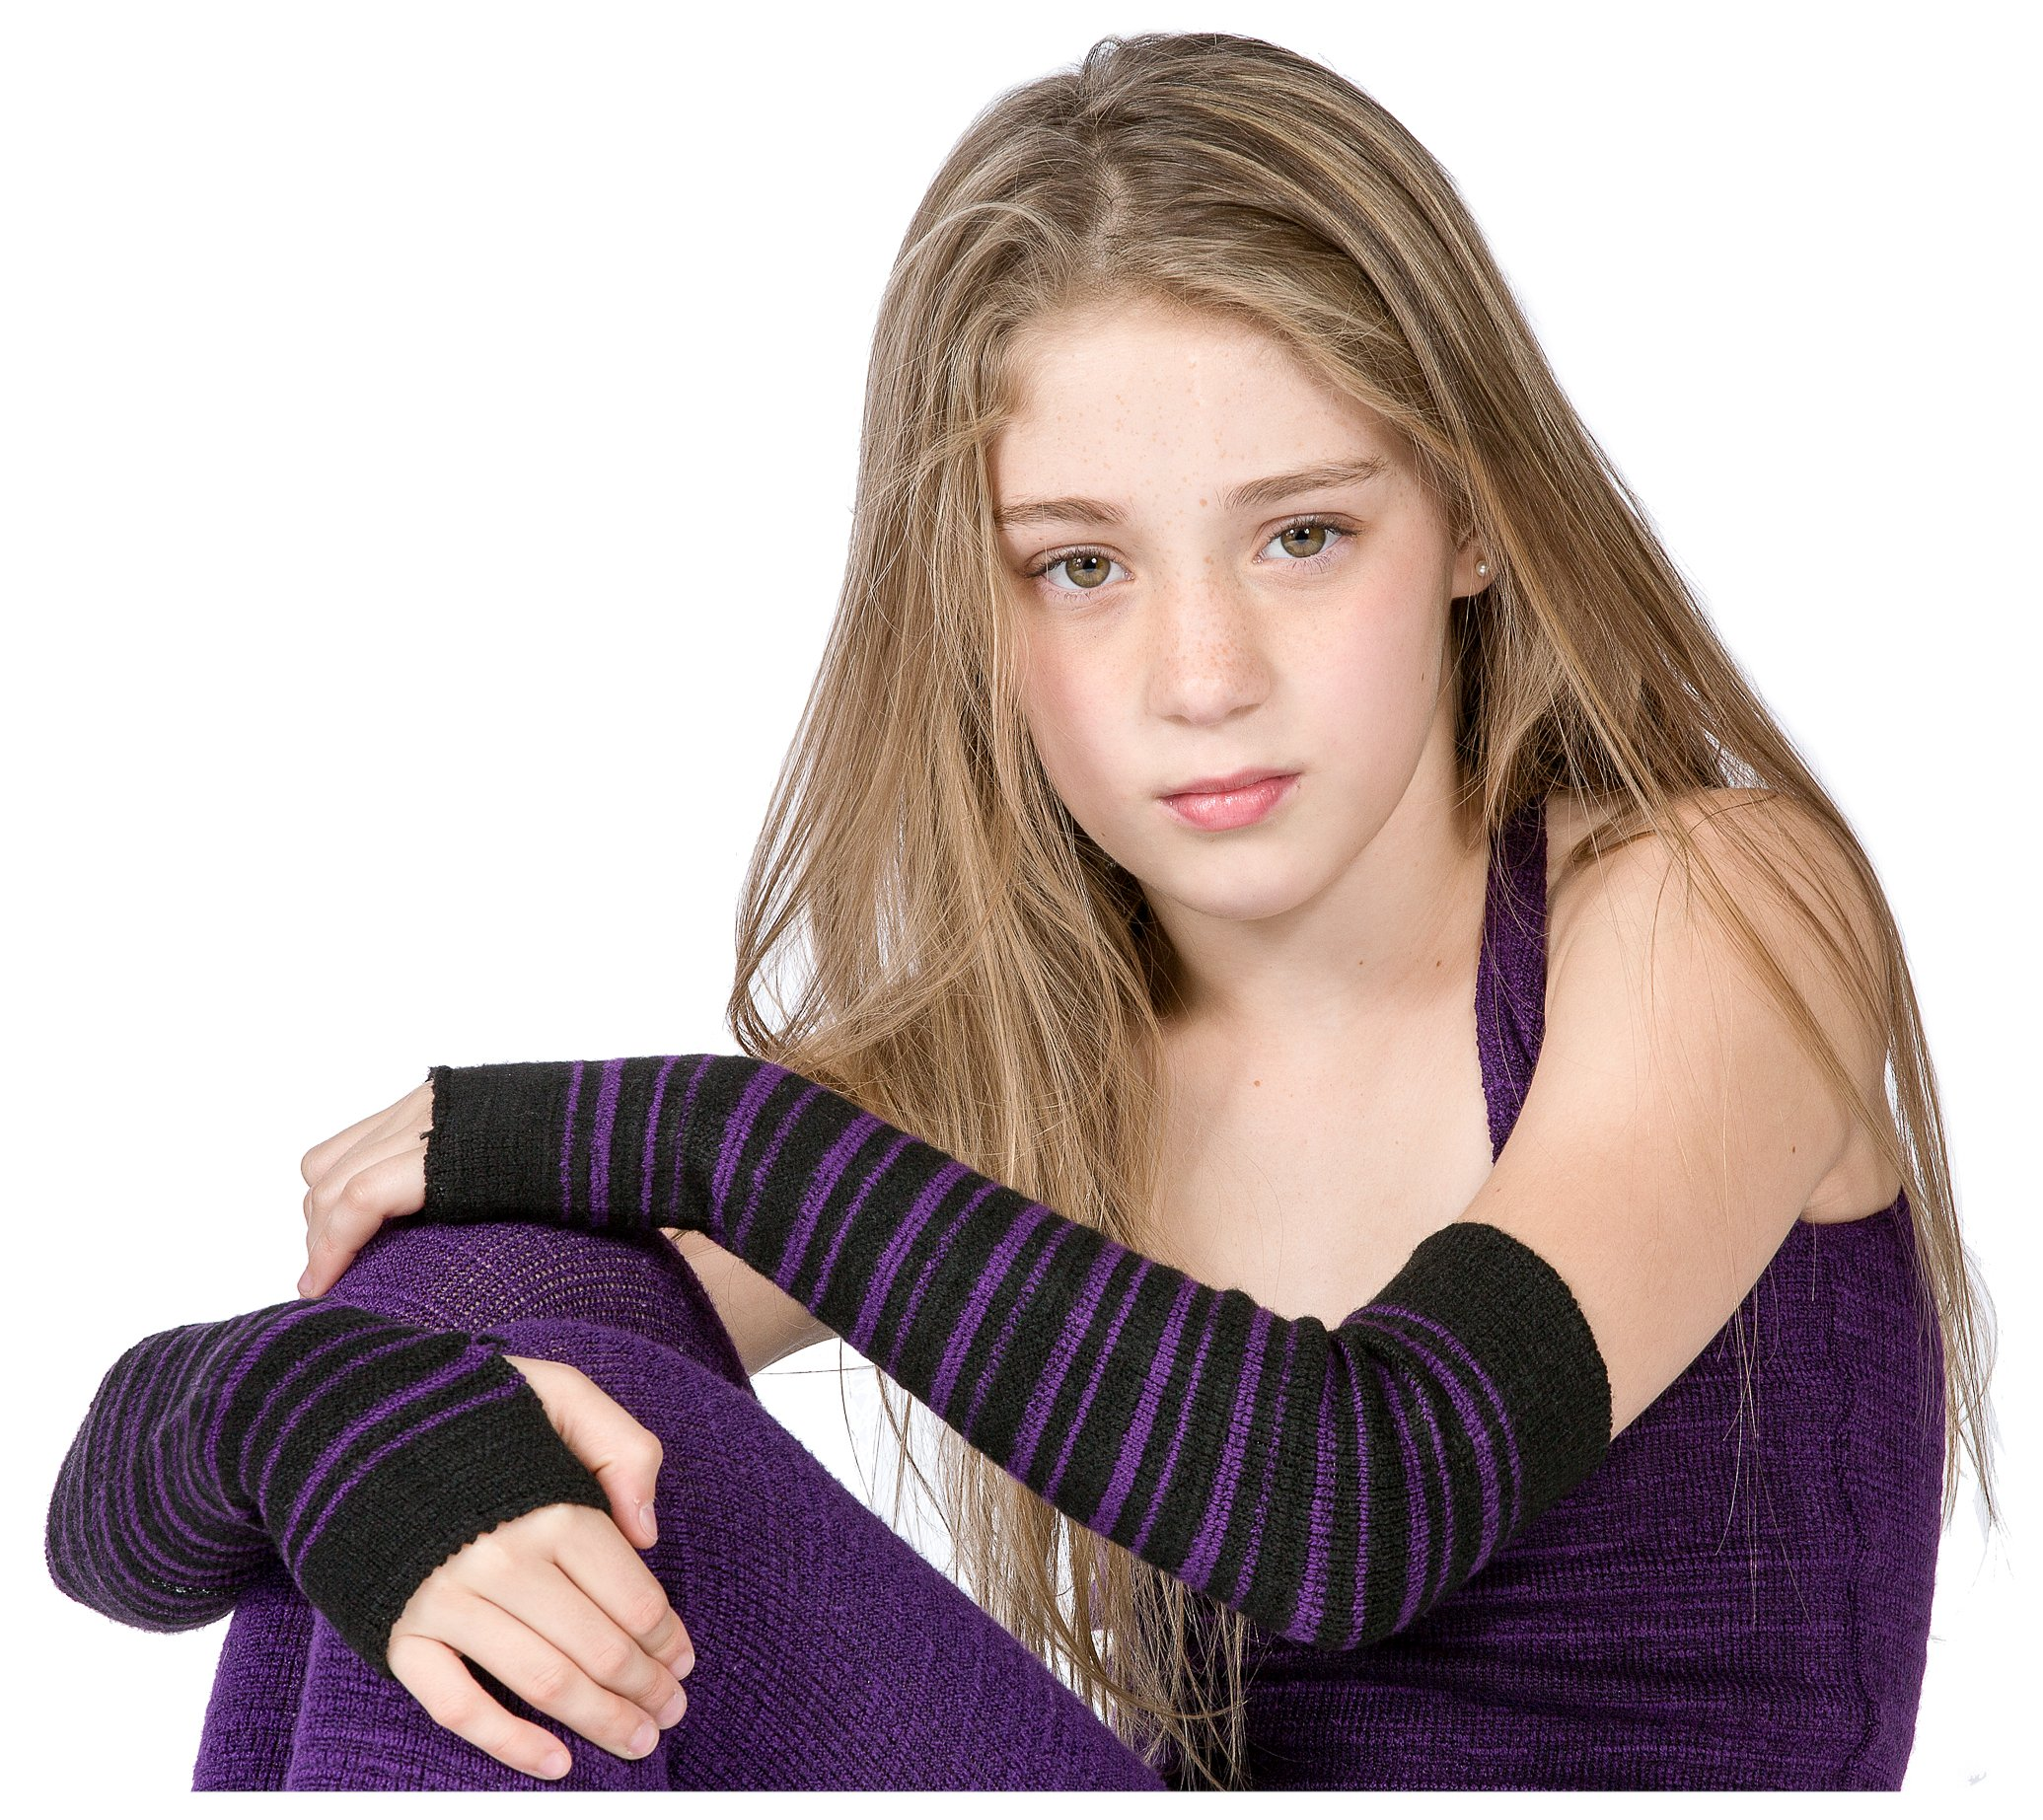 Black & Purple Striped Arm Warmer KD dance New York Sexy, Fashionable & Fingerless Arm Warmers Thumb Hole #MadeInUSA Happy New Year 2018 @KDdanceNewYork